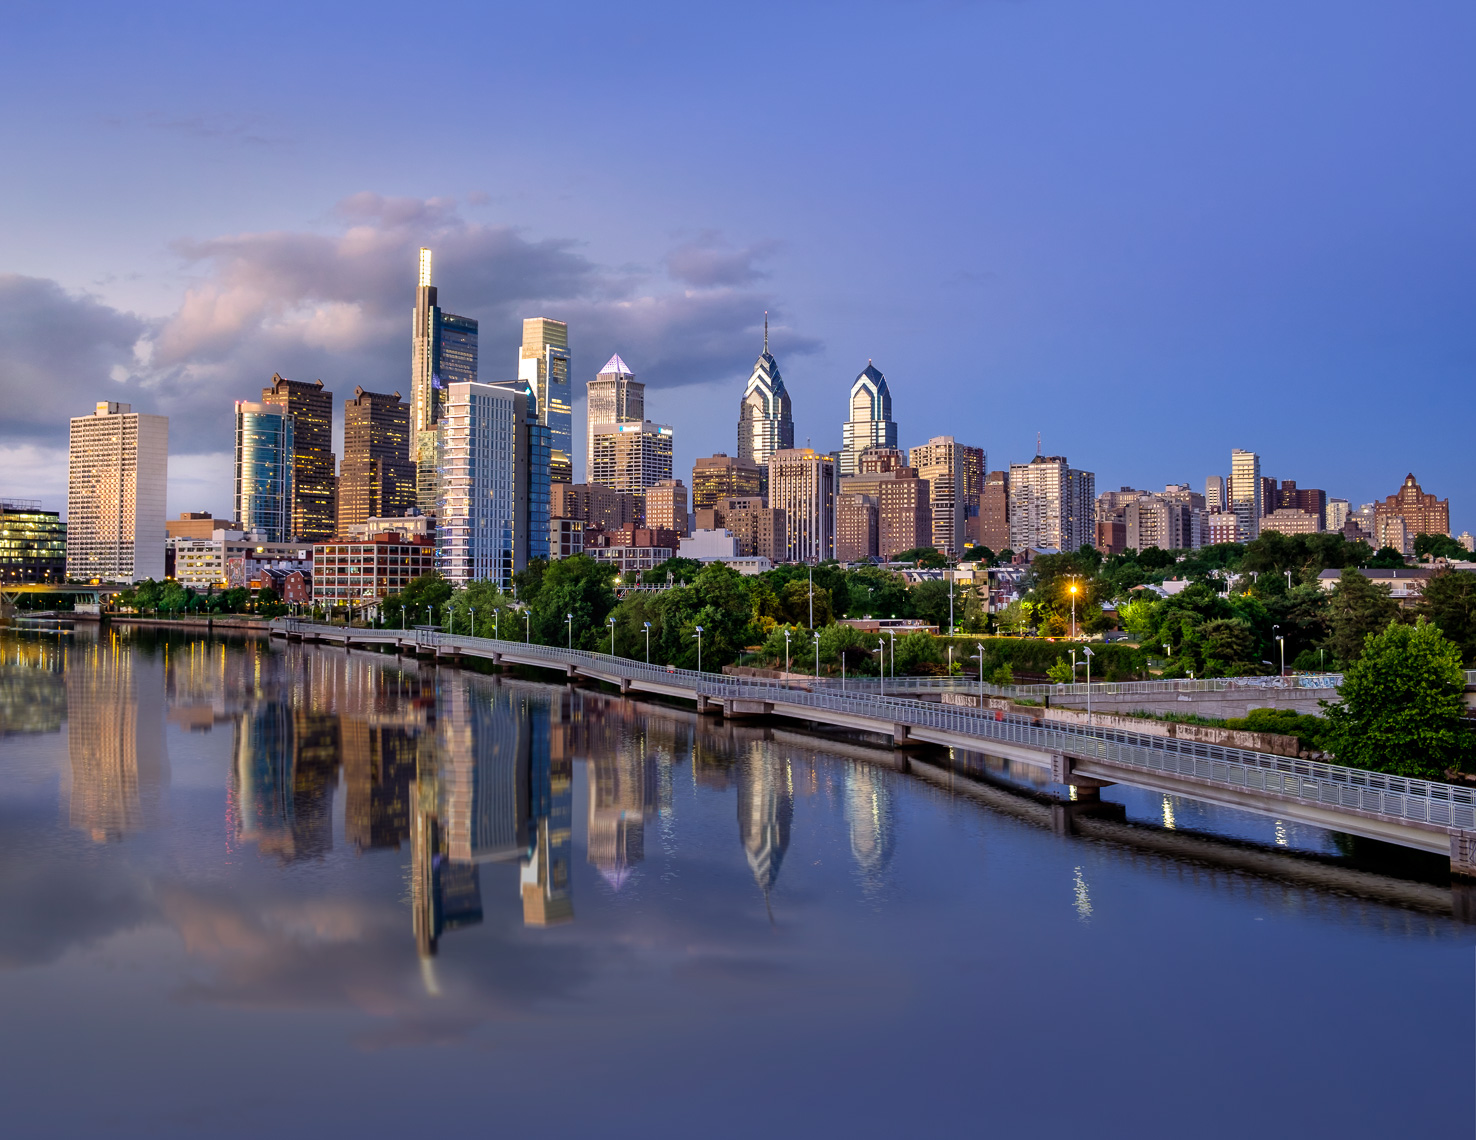 Philadelphia Skyline with Schuylkill River Park Boardwalk